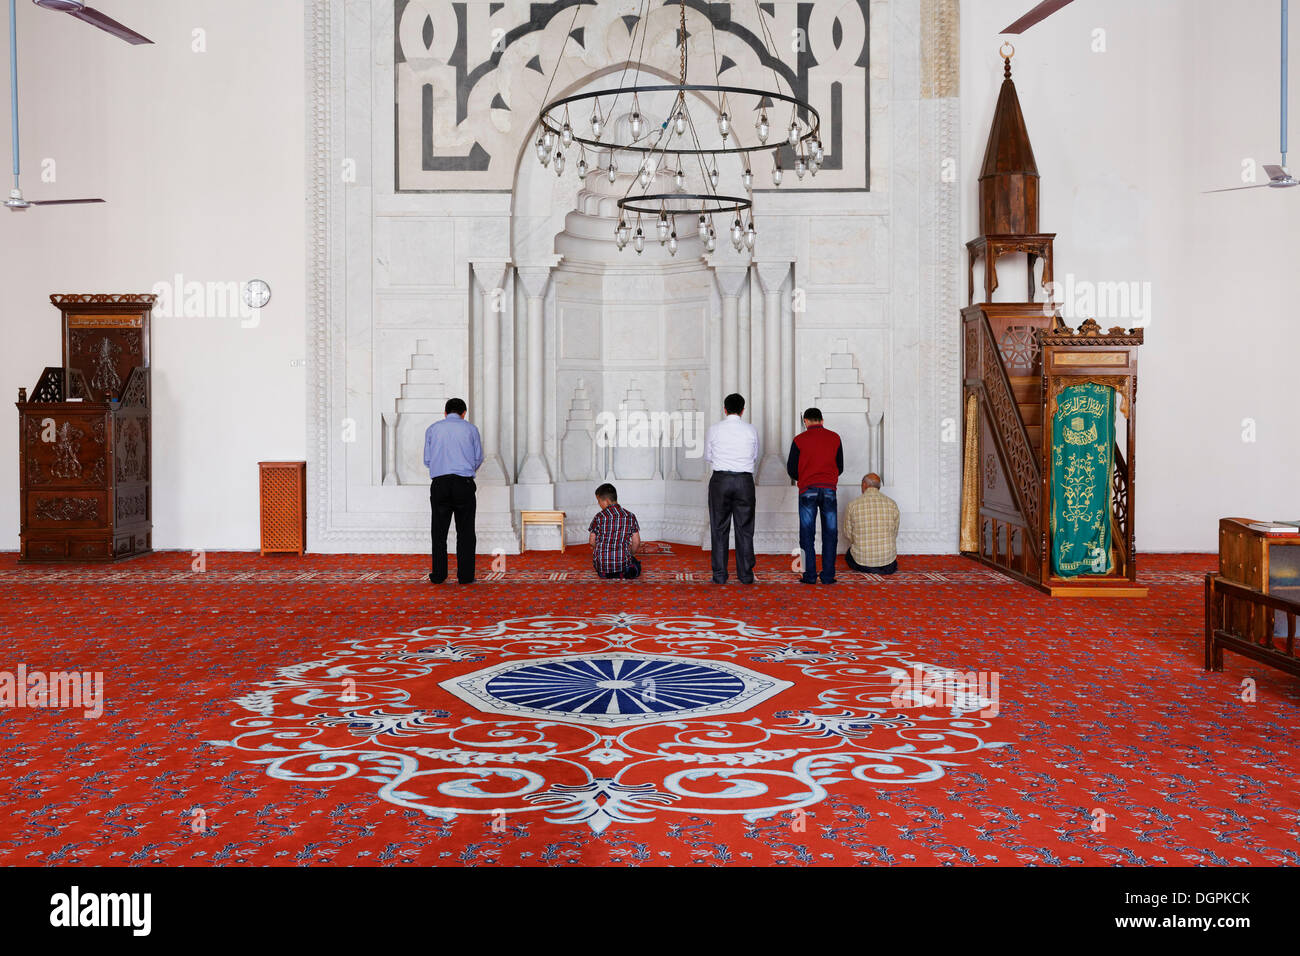 Muslims praying in the prayer room of the İsabey Mosque, Selçuk, İzmir Province, Aegean Region, Turkey - Stock Image